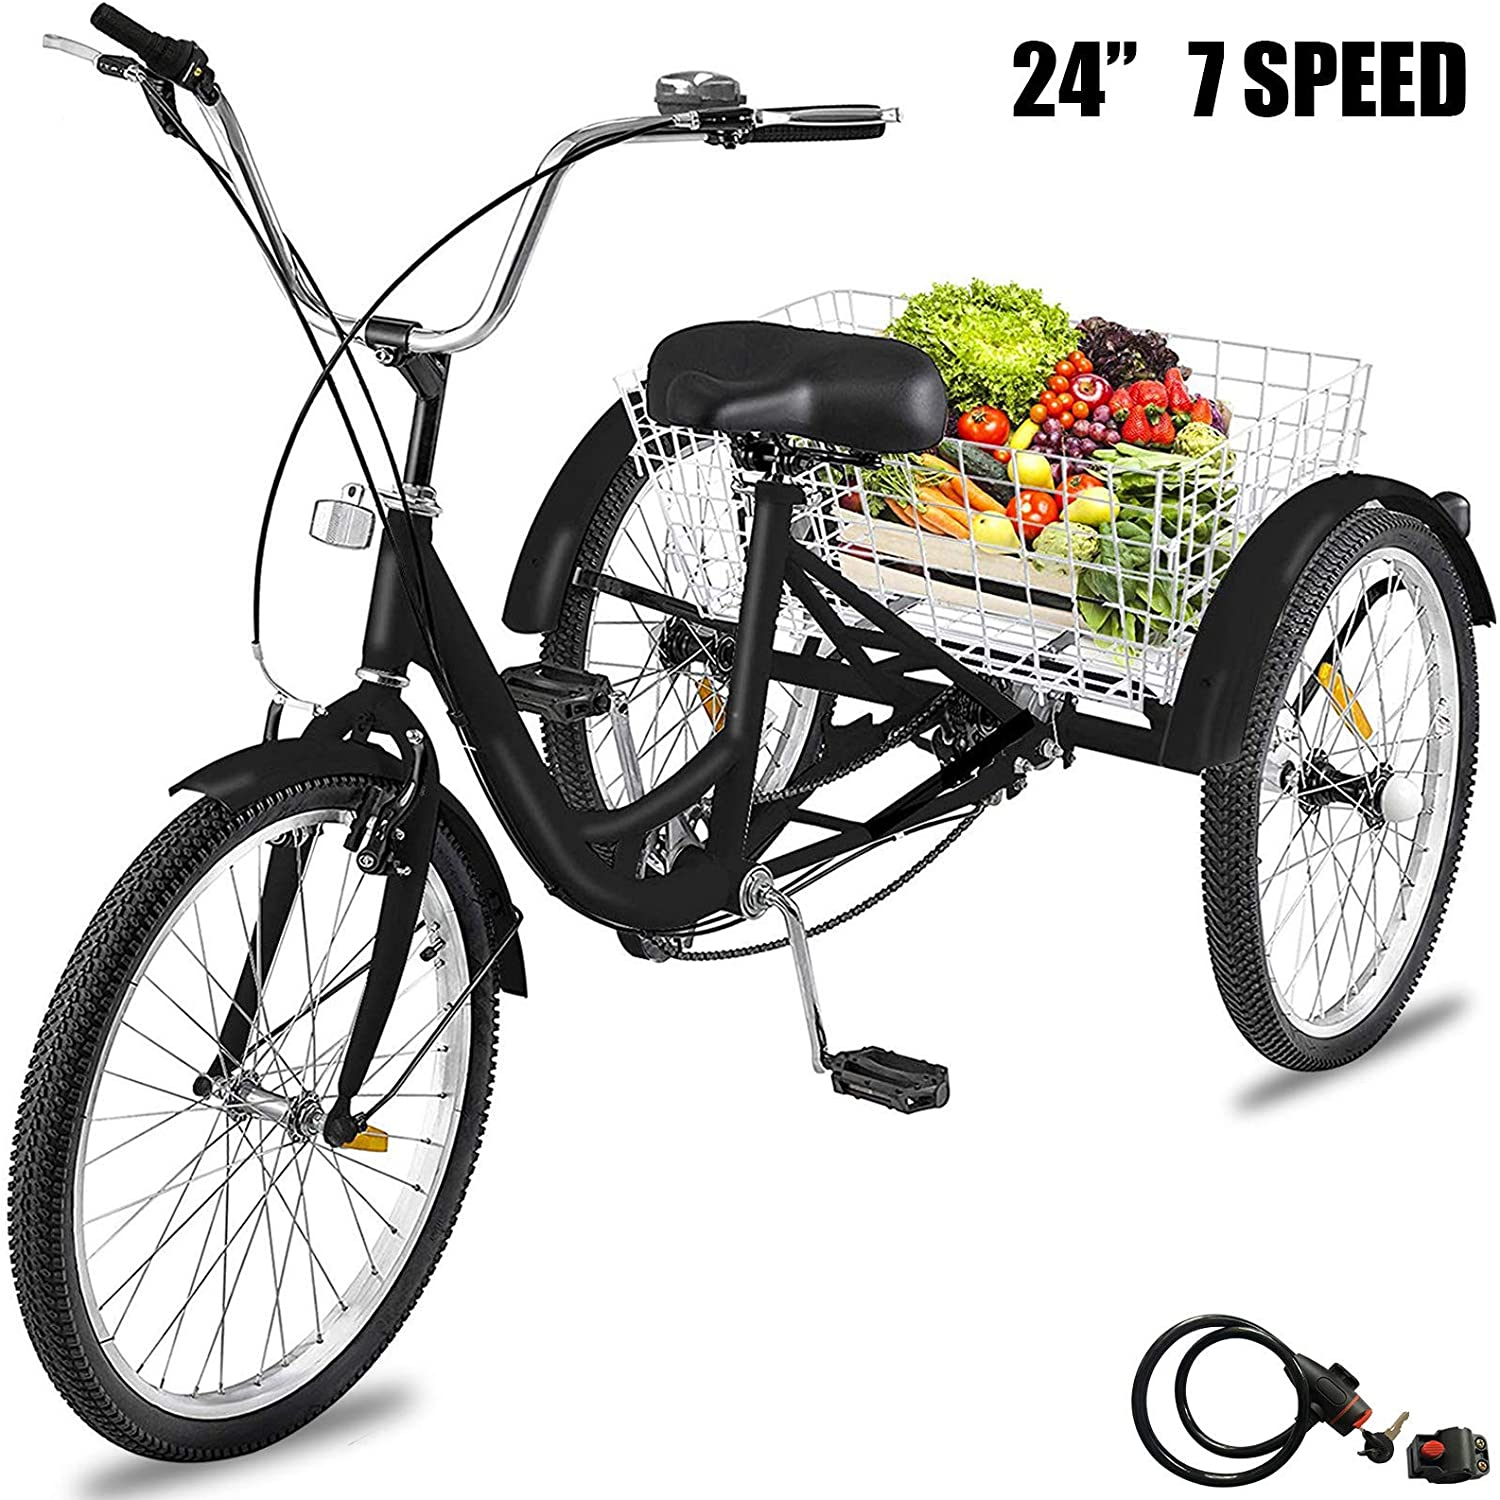 Cruise Bike Adult Tricycle Shopping Exercise Mens Womens Bike 24-Inch Single and 7 Speed Three-Wheeled Load 330 Lbs with Large Size Basket for Recreation